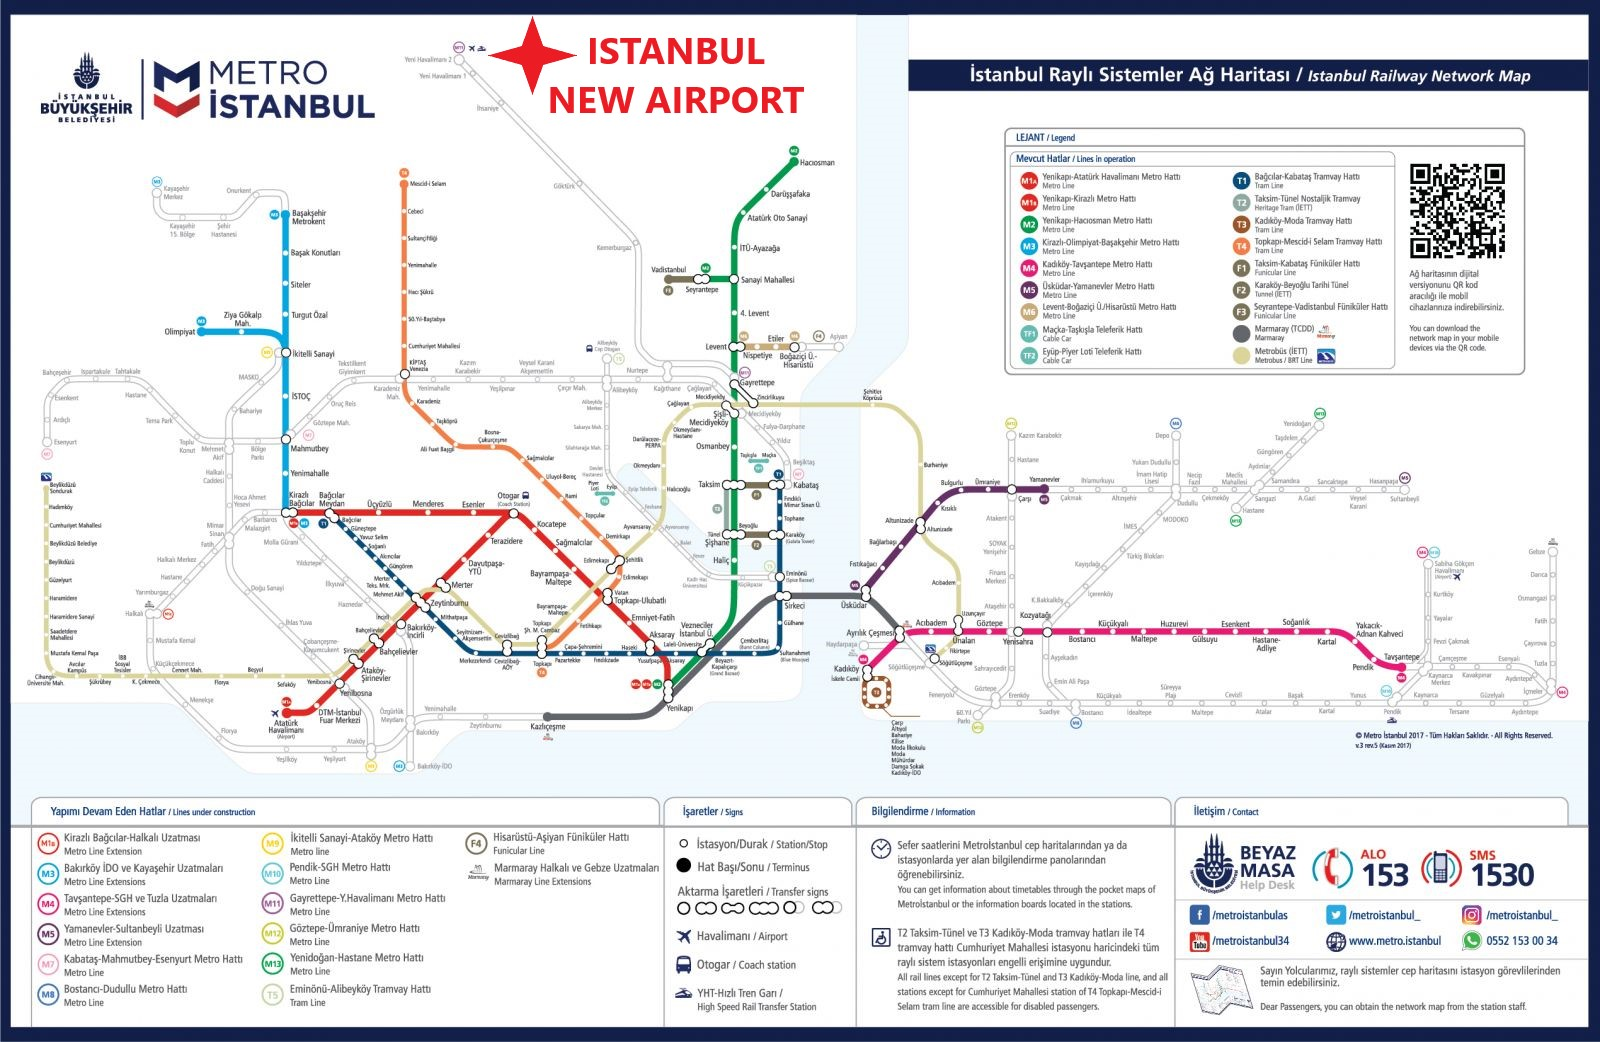 Istanbul New Airport Metro : Lines and Information ... on m5 bus map, m103 bus map, m3 bus map, m9 bus map, m15 bus map, m101 bus map, m21 bus map, m1 bus map, m2 bus map, nyc crosstown bus map, mta manhattan bus map, m61 bus map, new york bus route map, m20 bus map, n2 bus map, m4 bus map, n4 bus map, m116 bus map, mta bus route map, m60 bus map,